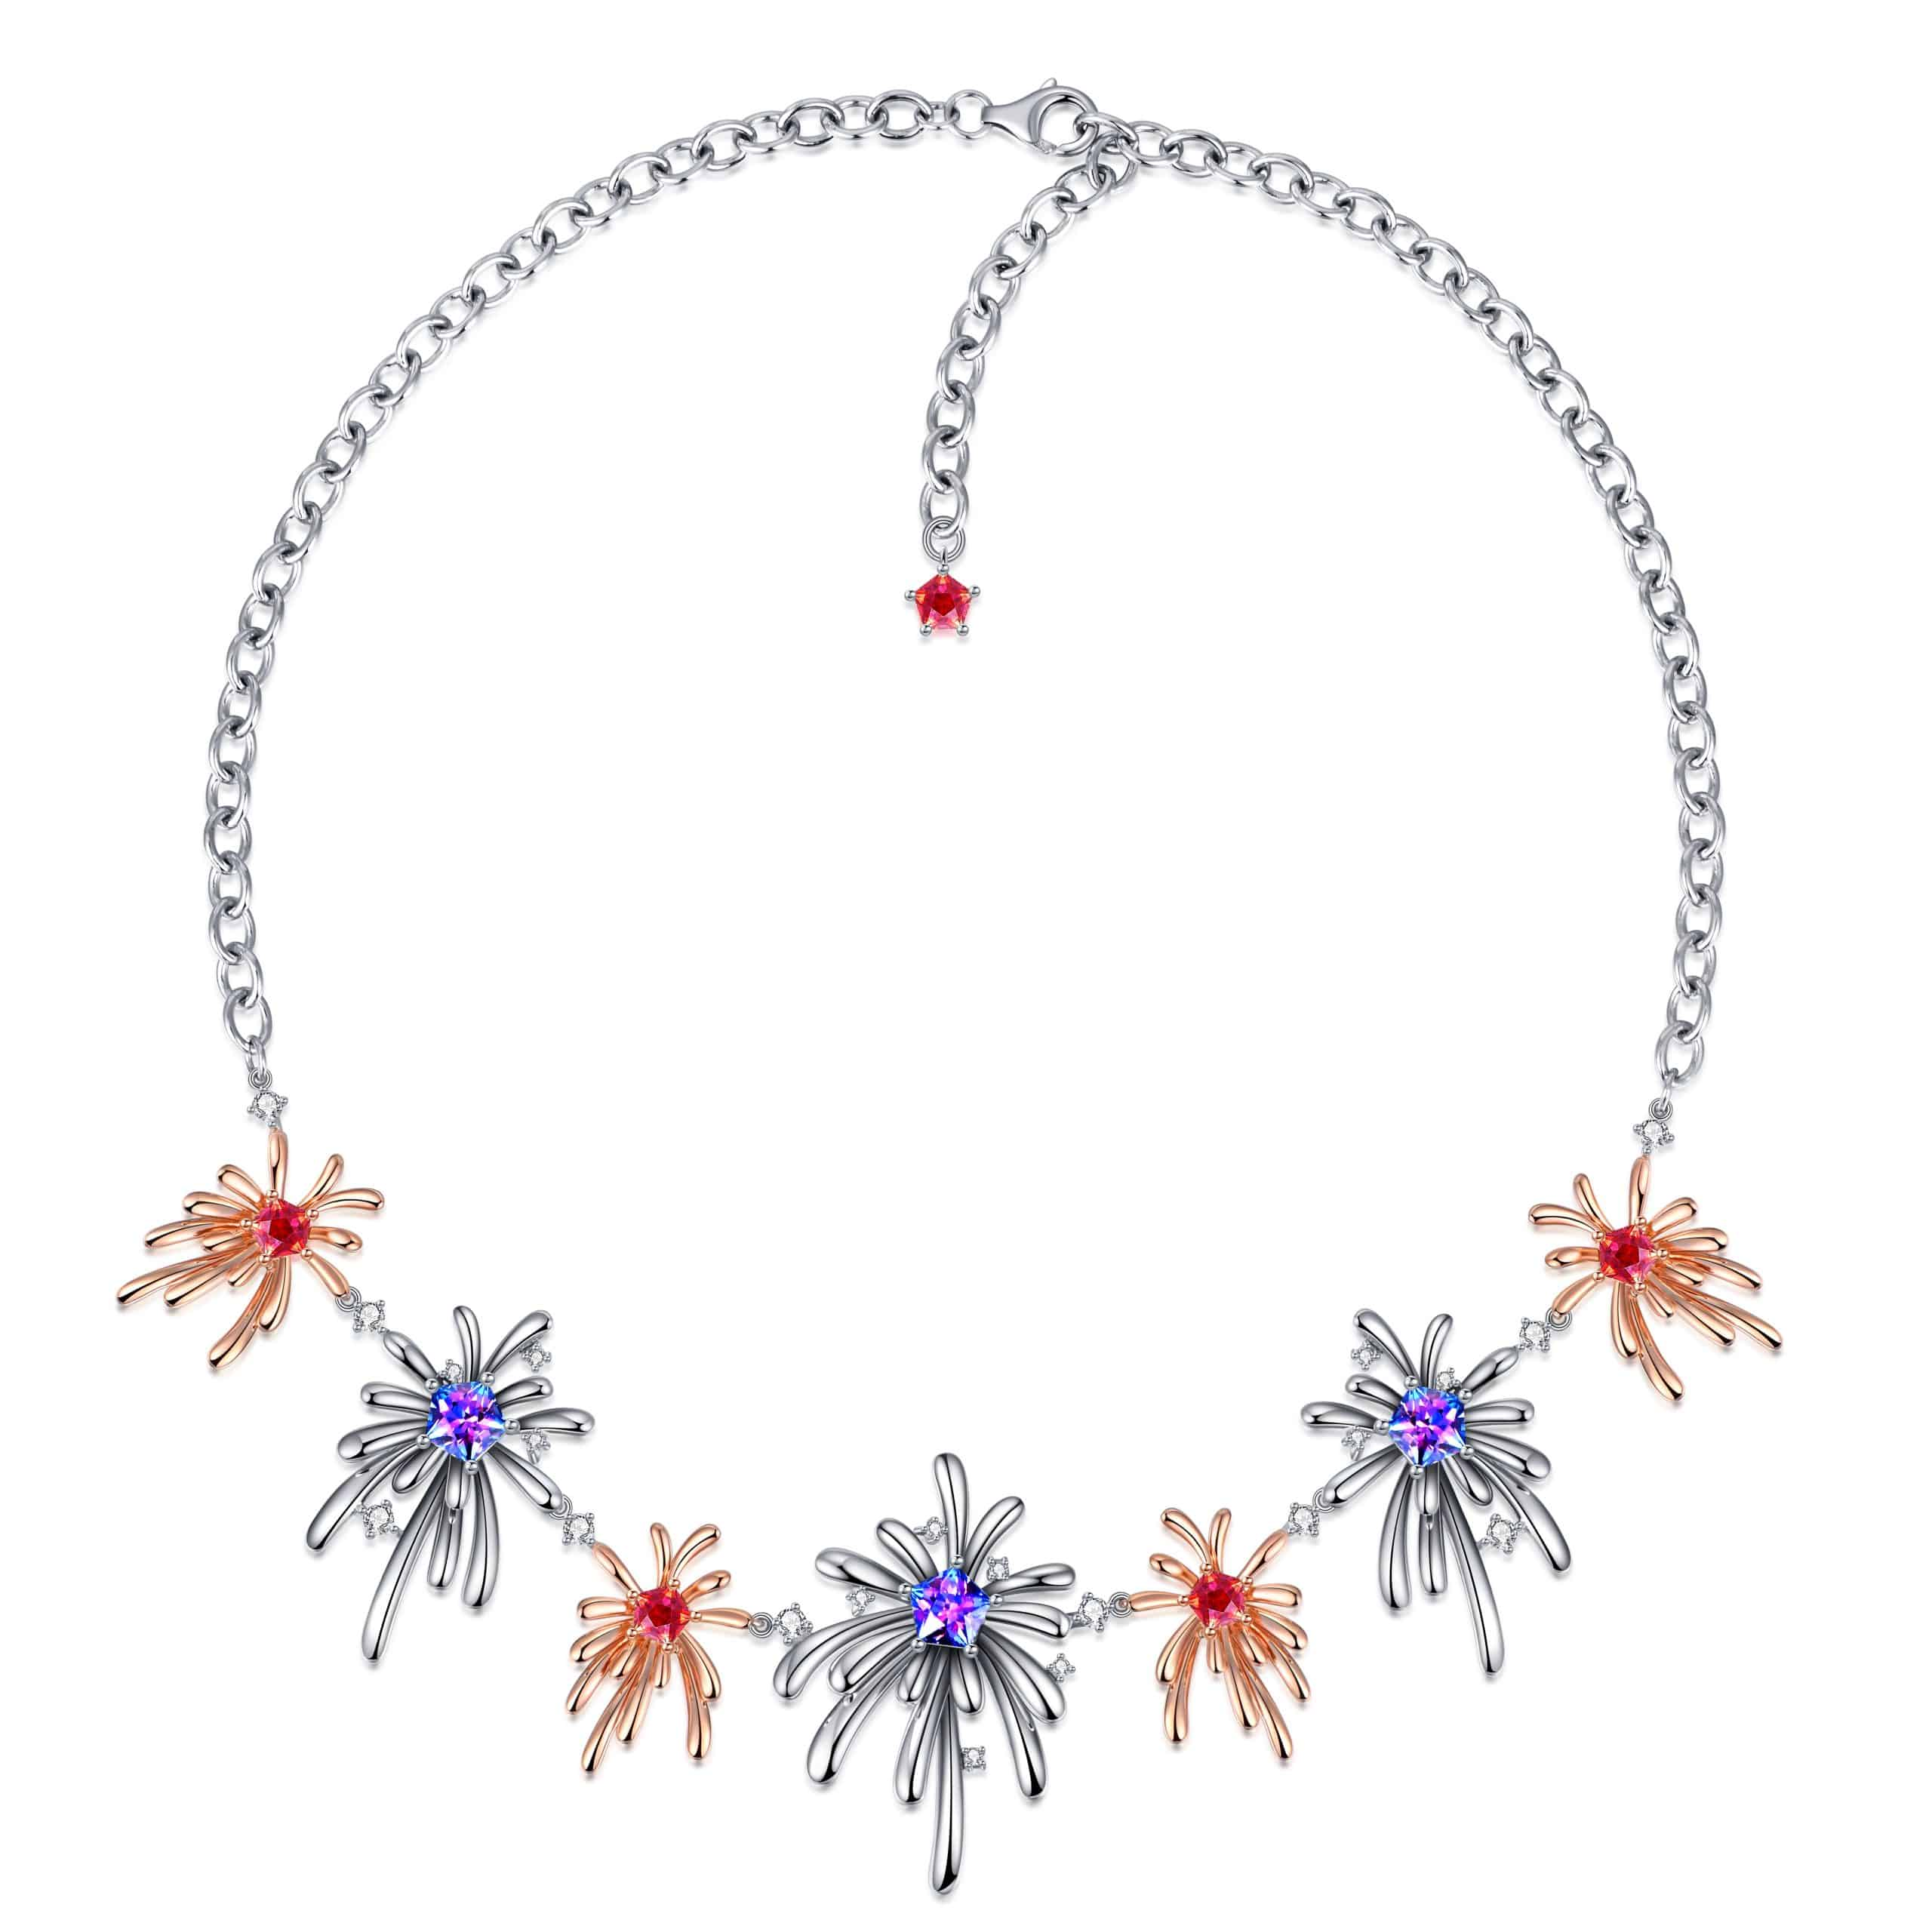 Fireworks explode in new Carpe Diem collection by Fei Liu Fine Jewellery